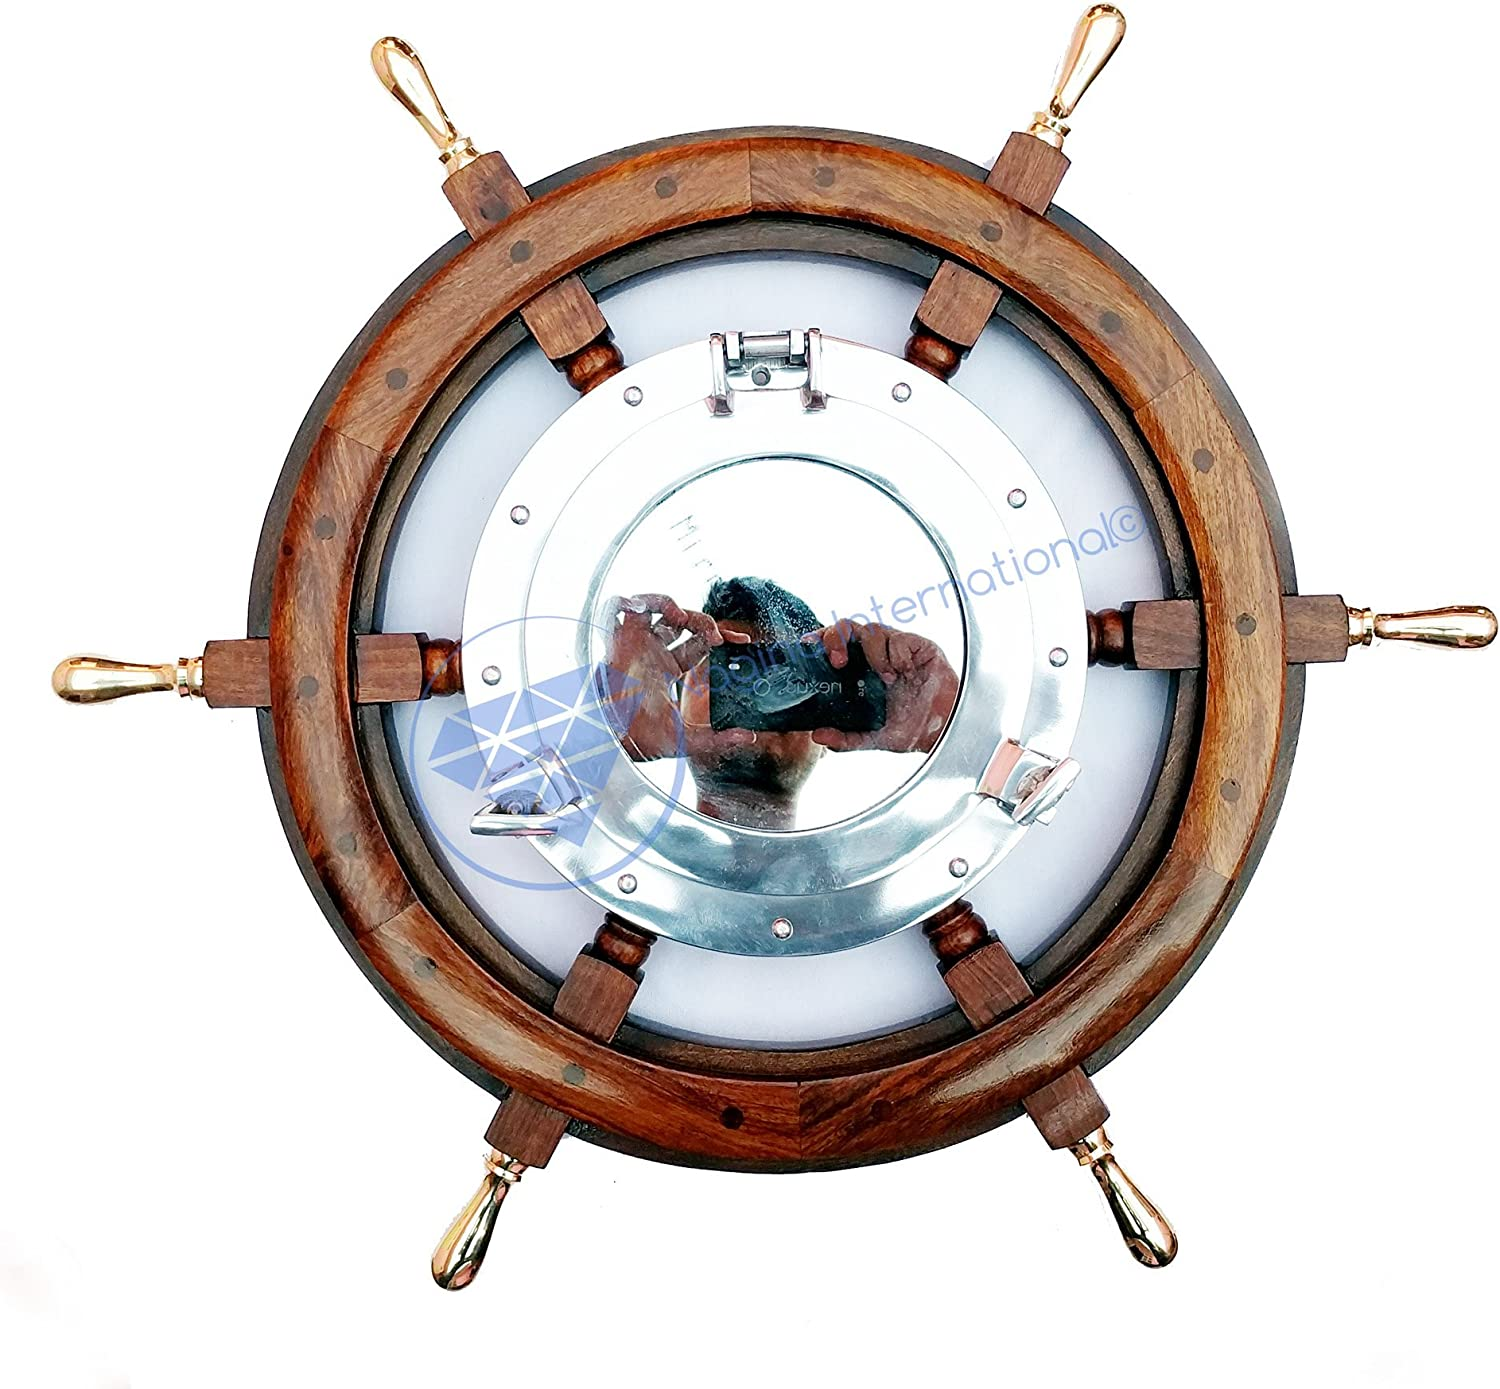 24  Nautical Wooden Ship Wheel with Brass Handles & 10  Aluminum Porthole Mirror   Pirate's Boat Decor   Nagina International